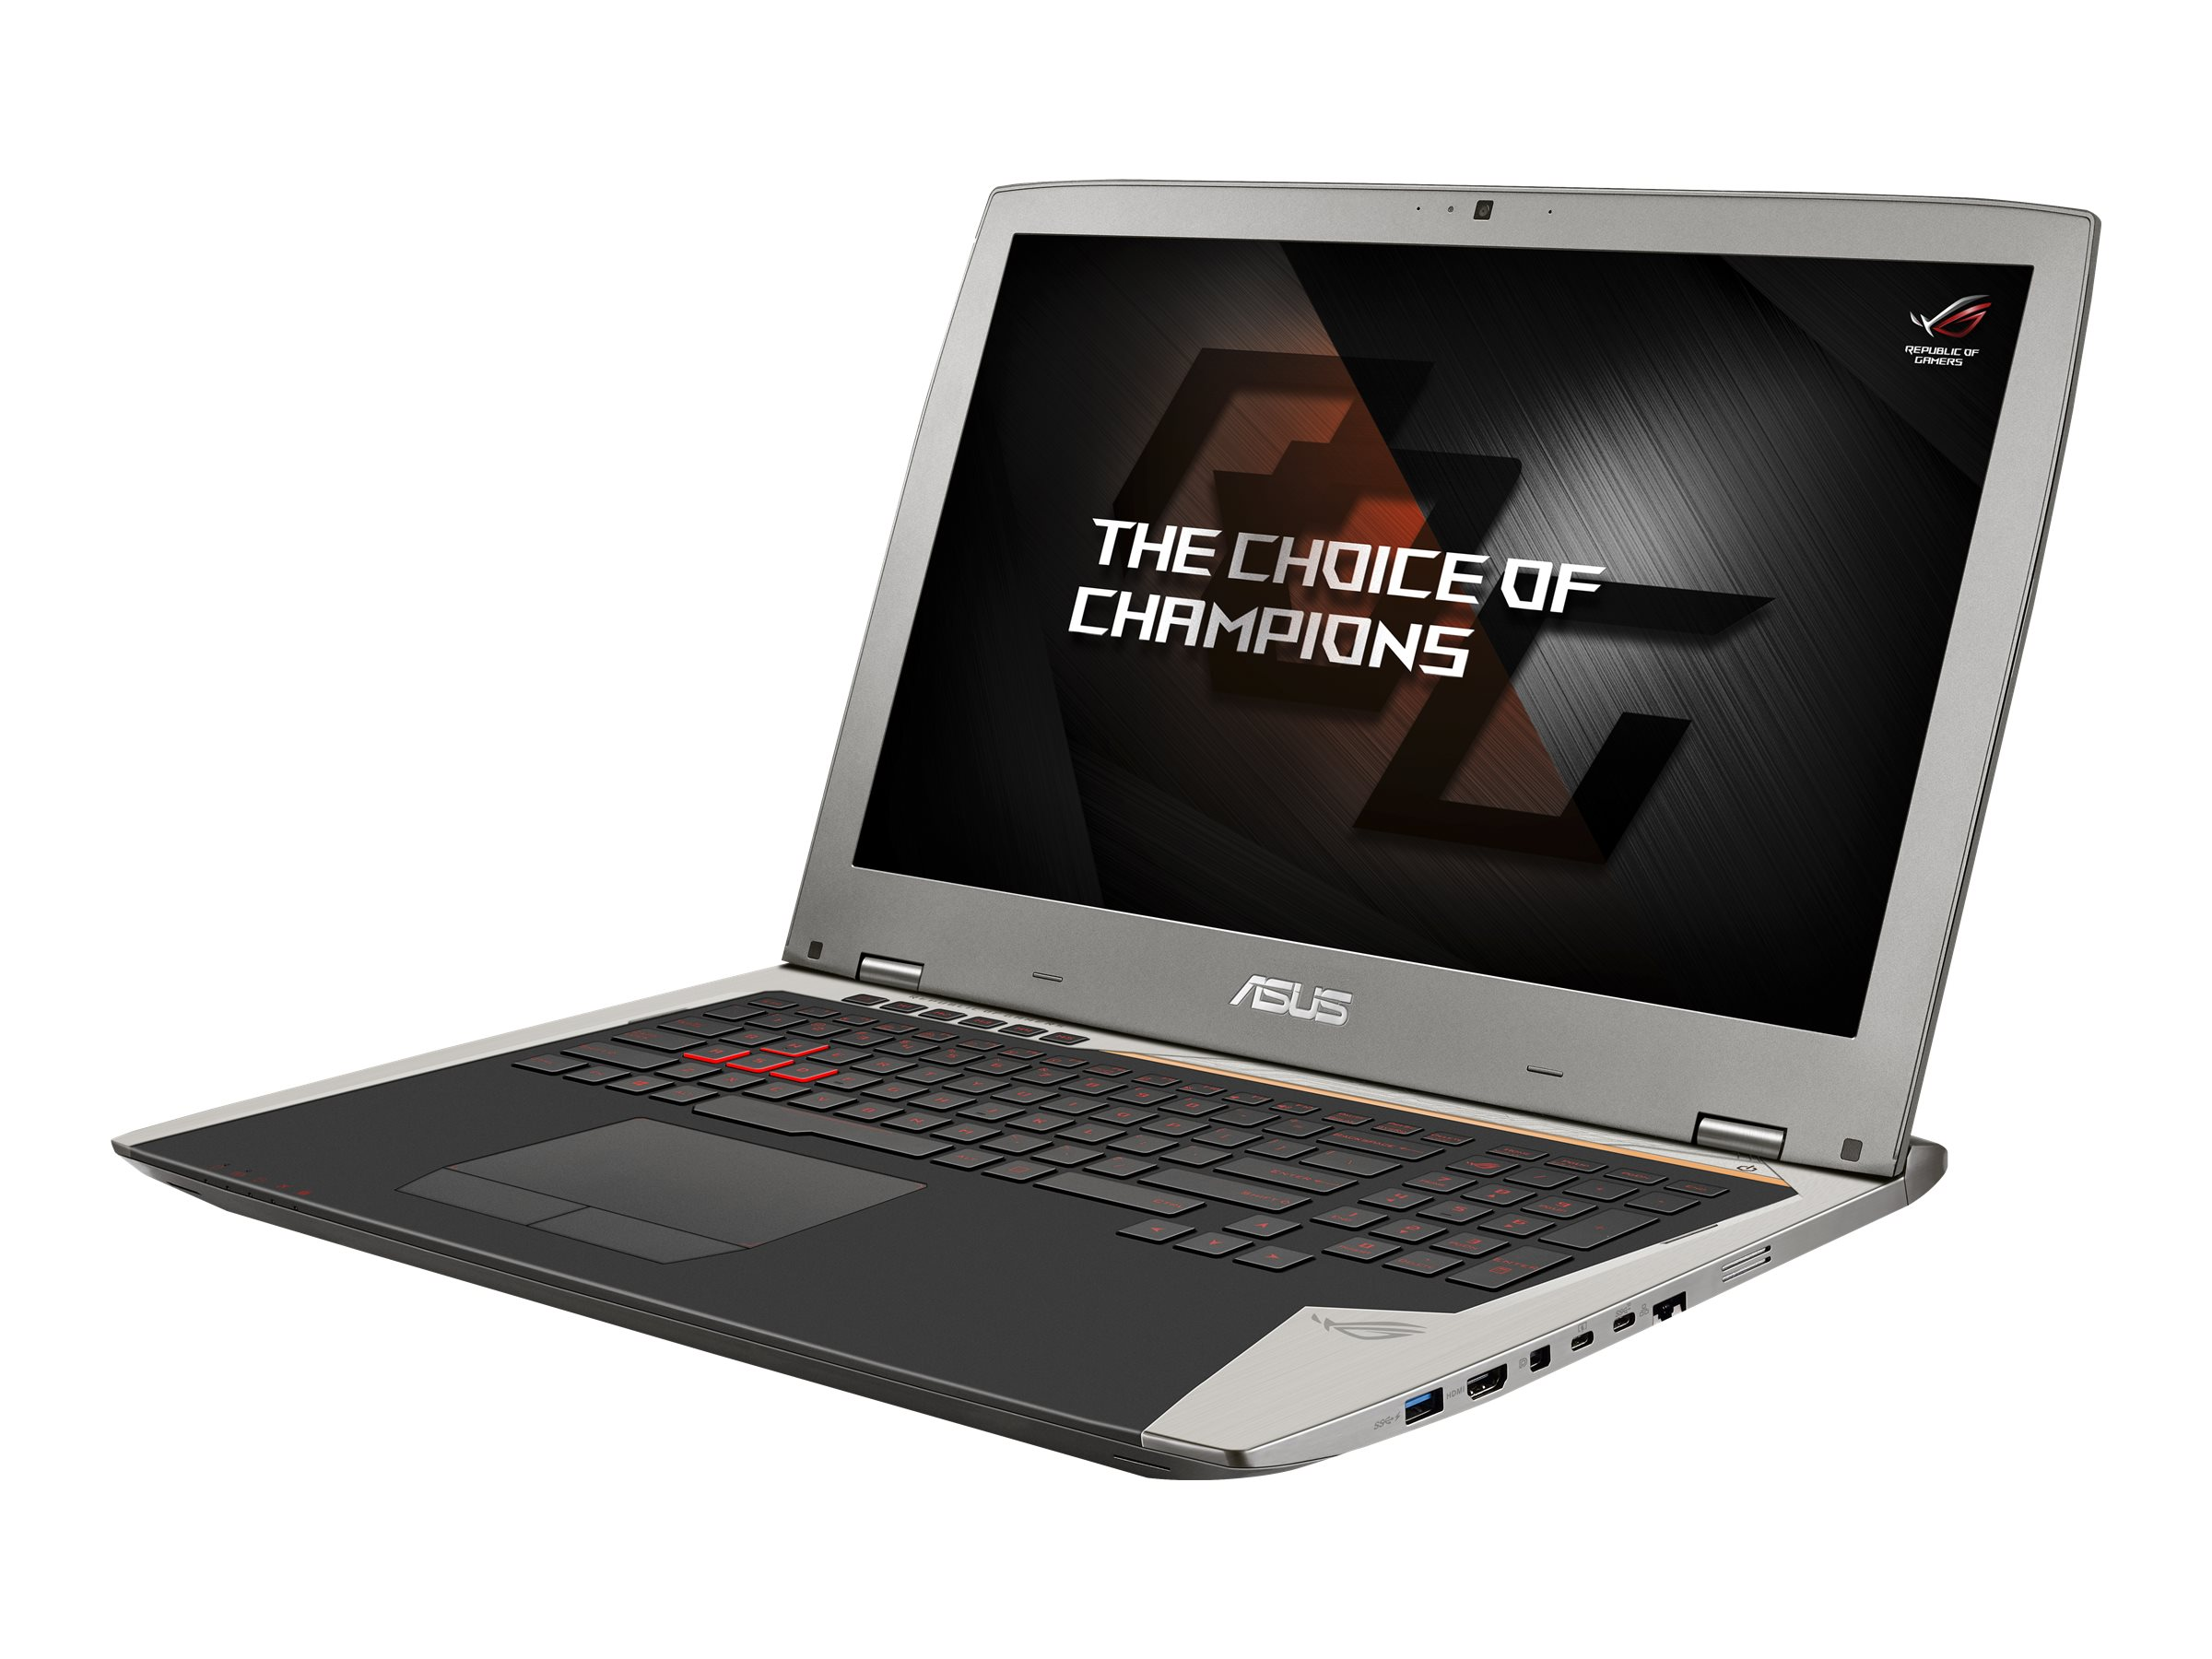 Asus G701VO-CS74K Core i7-6820HK 64GB 512GB 17.3 W10